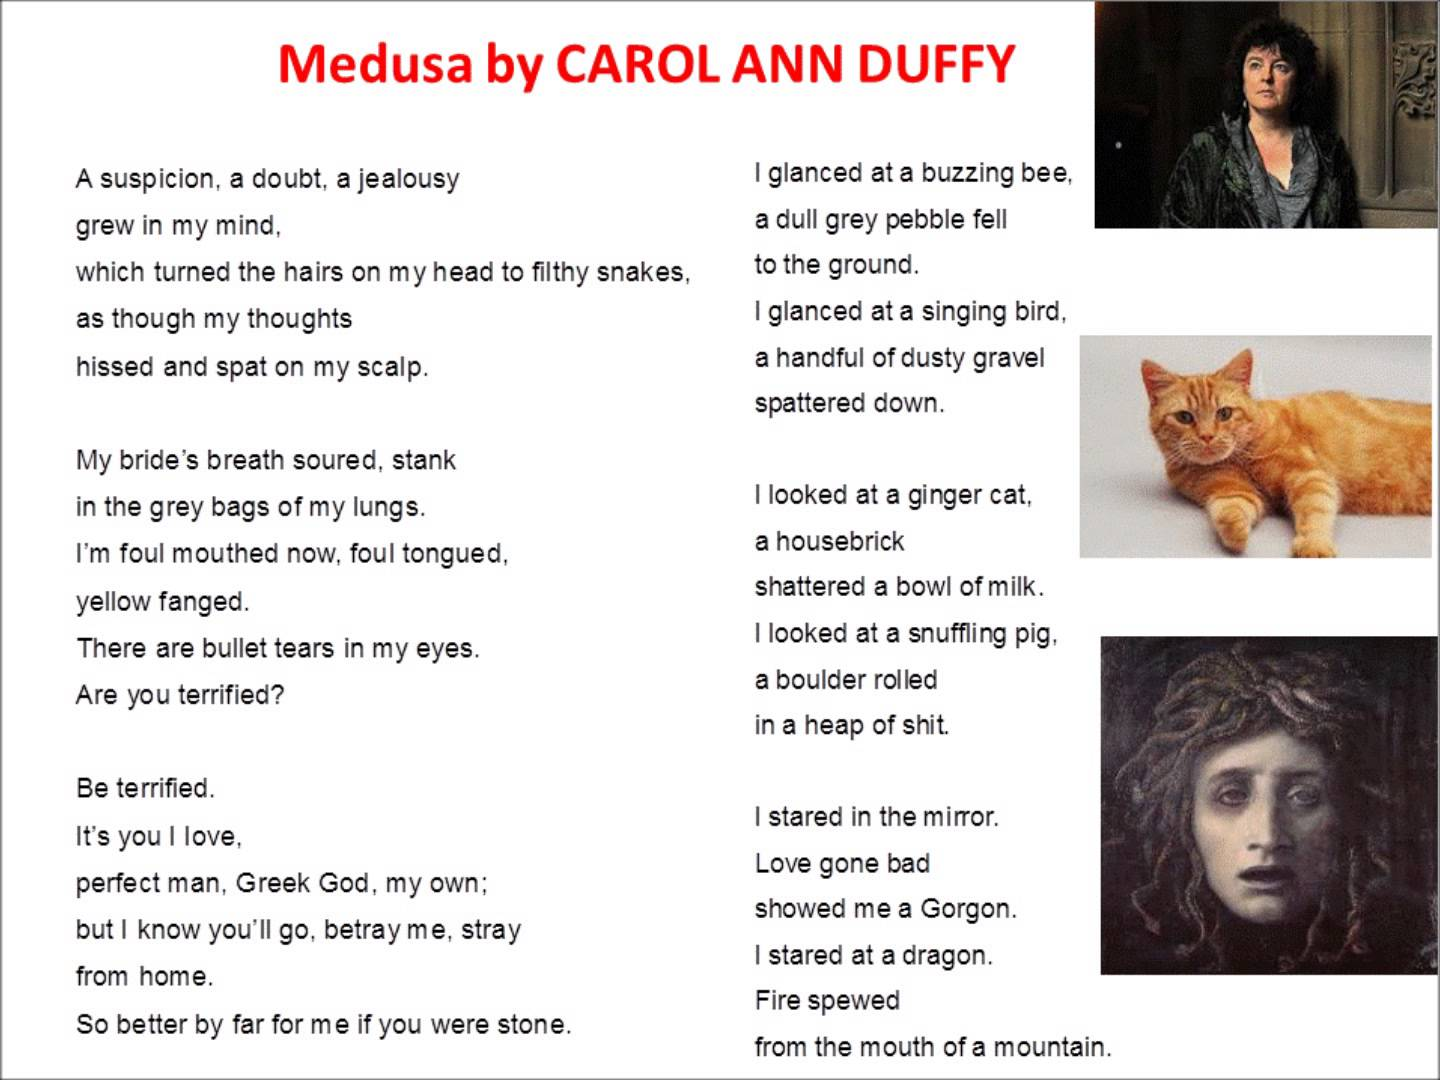 carol ann duffy poems analysis Carol ann duffy is the first female poet laureate ever in the united kingdom her collection, the feminine gospels is about to go on the national a level syllabus for 2013 as the world's wife collection takes a backseat, here is an analysis of the poem history .